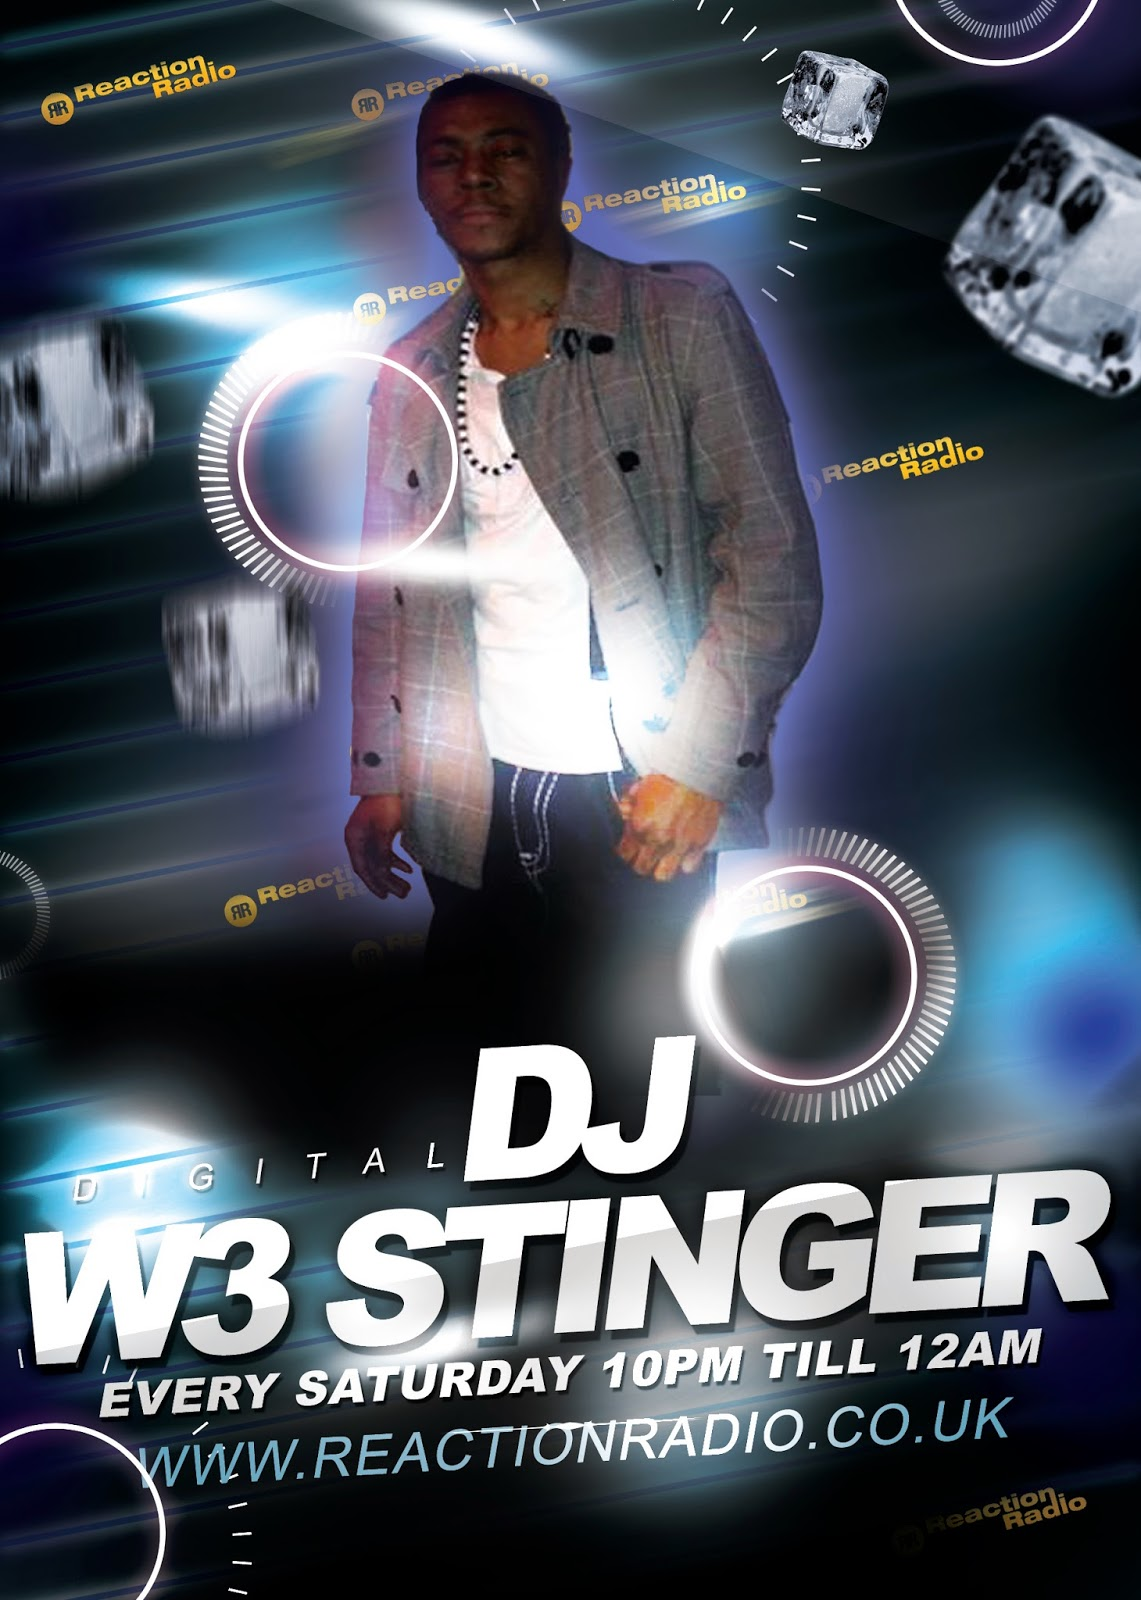 https://www.facebook.com/DidgitaldjStinger